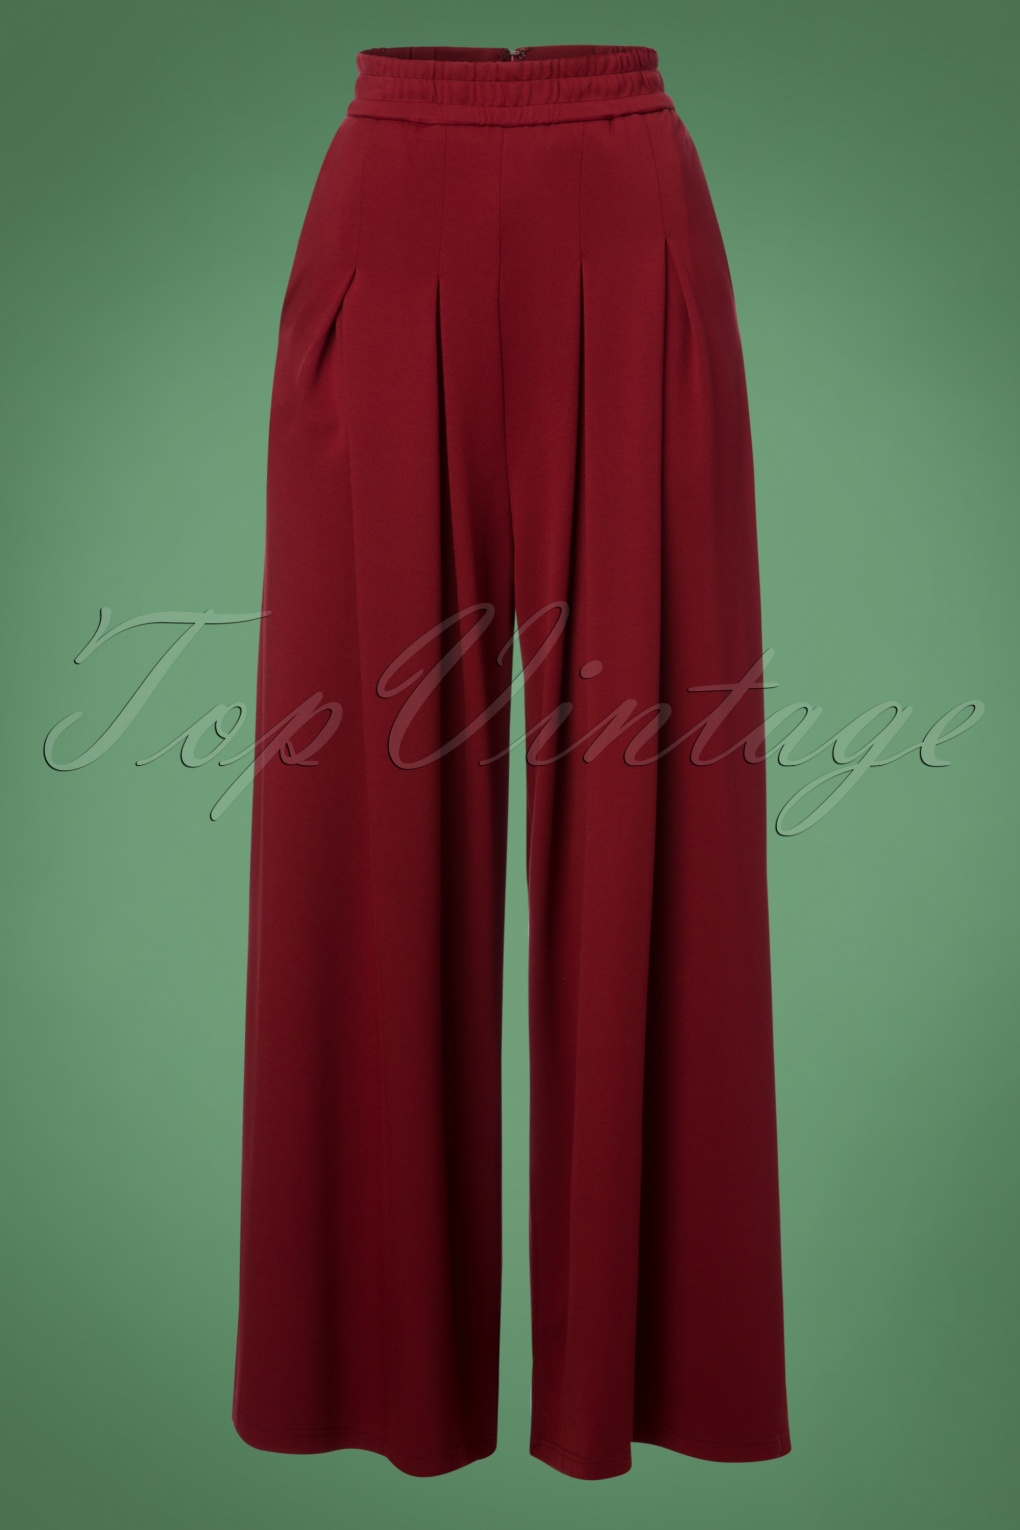 Vintage High Waisted Trousers, Sailor Pants, Jeans 70s Indiana Trousers in Burgundy £49.42 AT vintagedancer.com